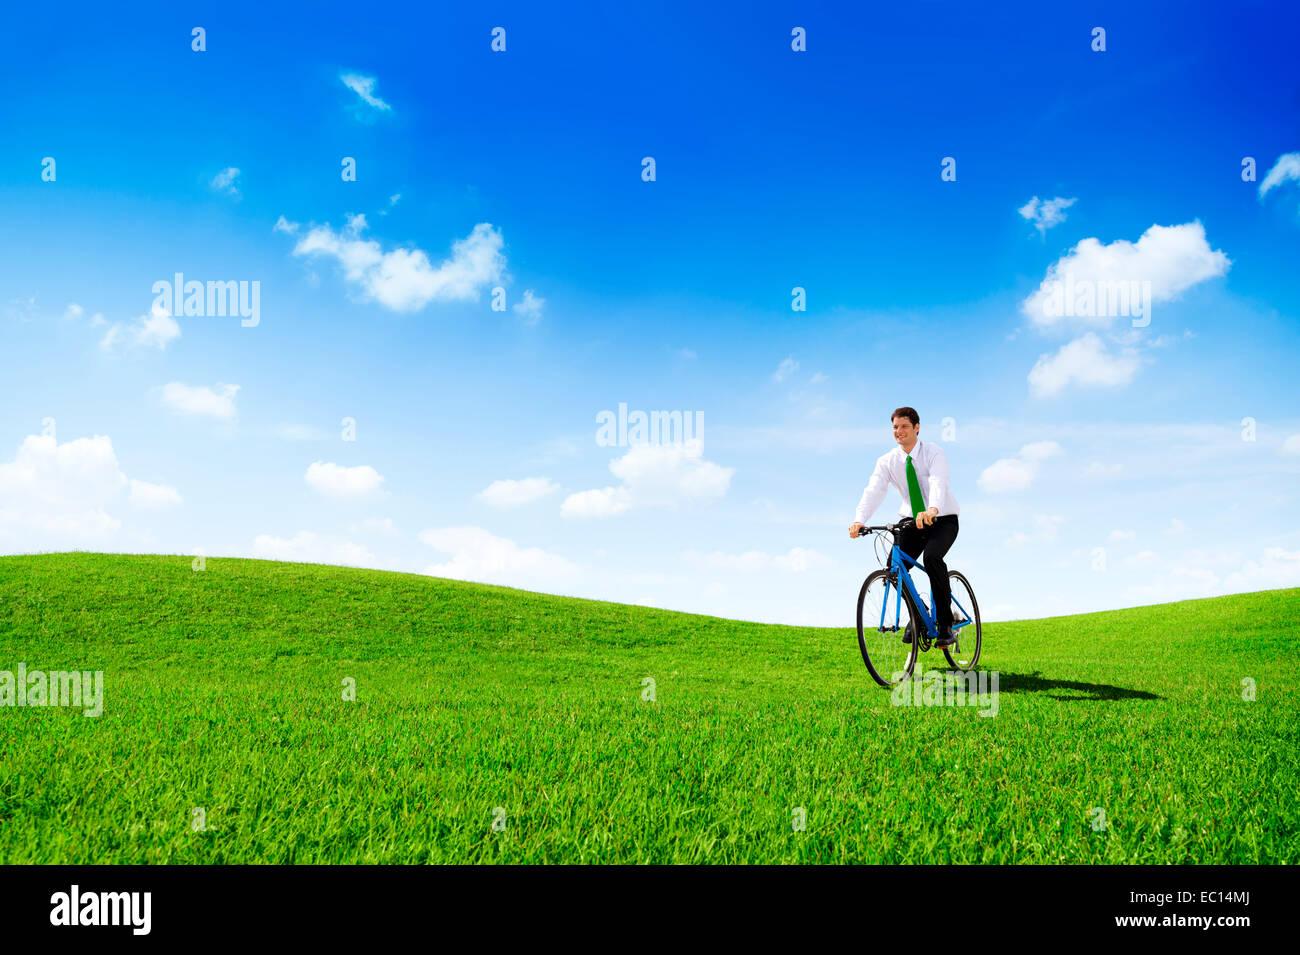 Green Concept Business Man Cycling Bicycle Outdoors - Stock Image